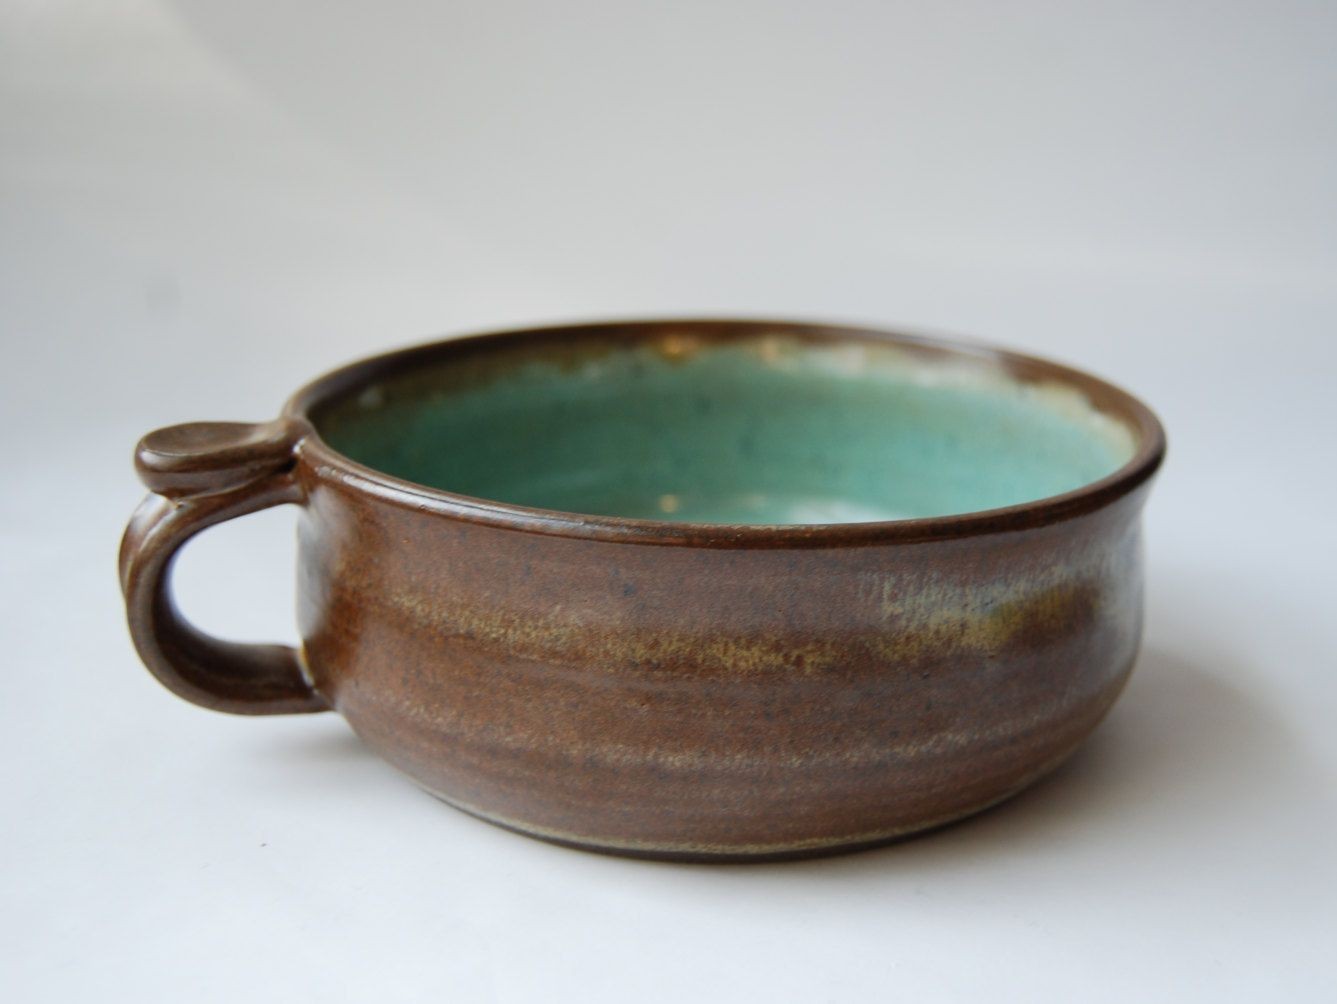 recycled glass handmade pottery brown and turquoise bowl